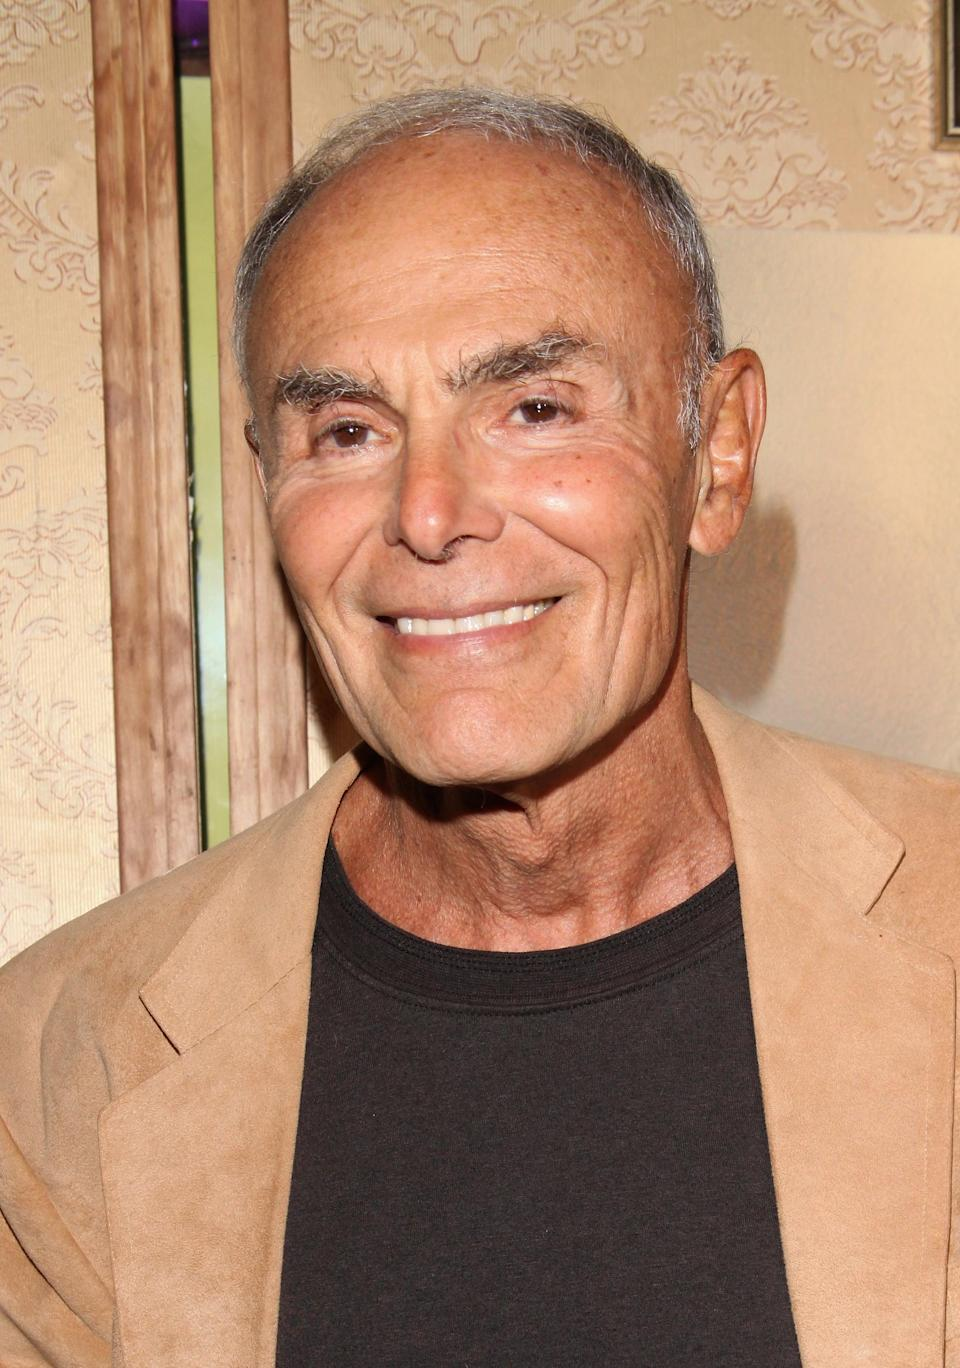 "<p>The <a href=""https://www.hollywoodreporter.com/news/john-saxon-dead-enter-dragon-nightmare-elm-street-actor-was-83-1095778"" class=""link rapid-noclick-resp"" rel=""nofollow noopener"" target=""_blank"" data-ylk=""slk:Enter the Dragon actor died of pneumonia""><strong>Enter the Dragon</strong> actor died of pneumonia</a> on July 25. He was 83.</p>"